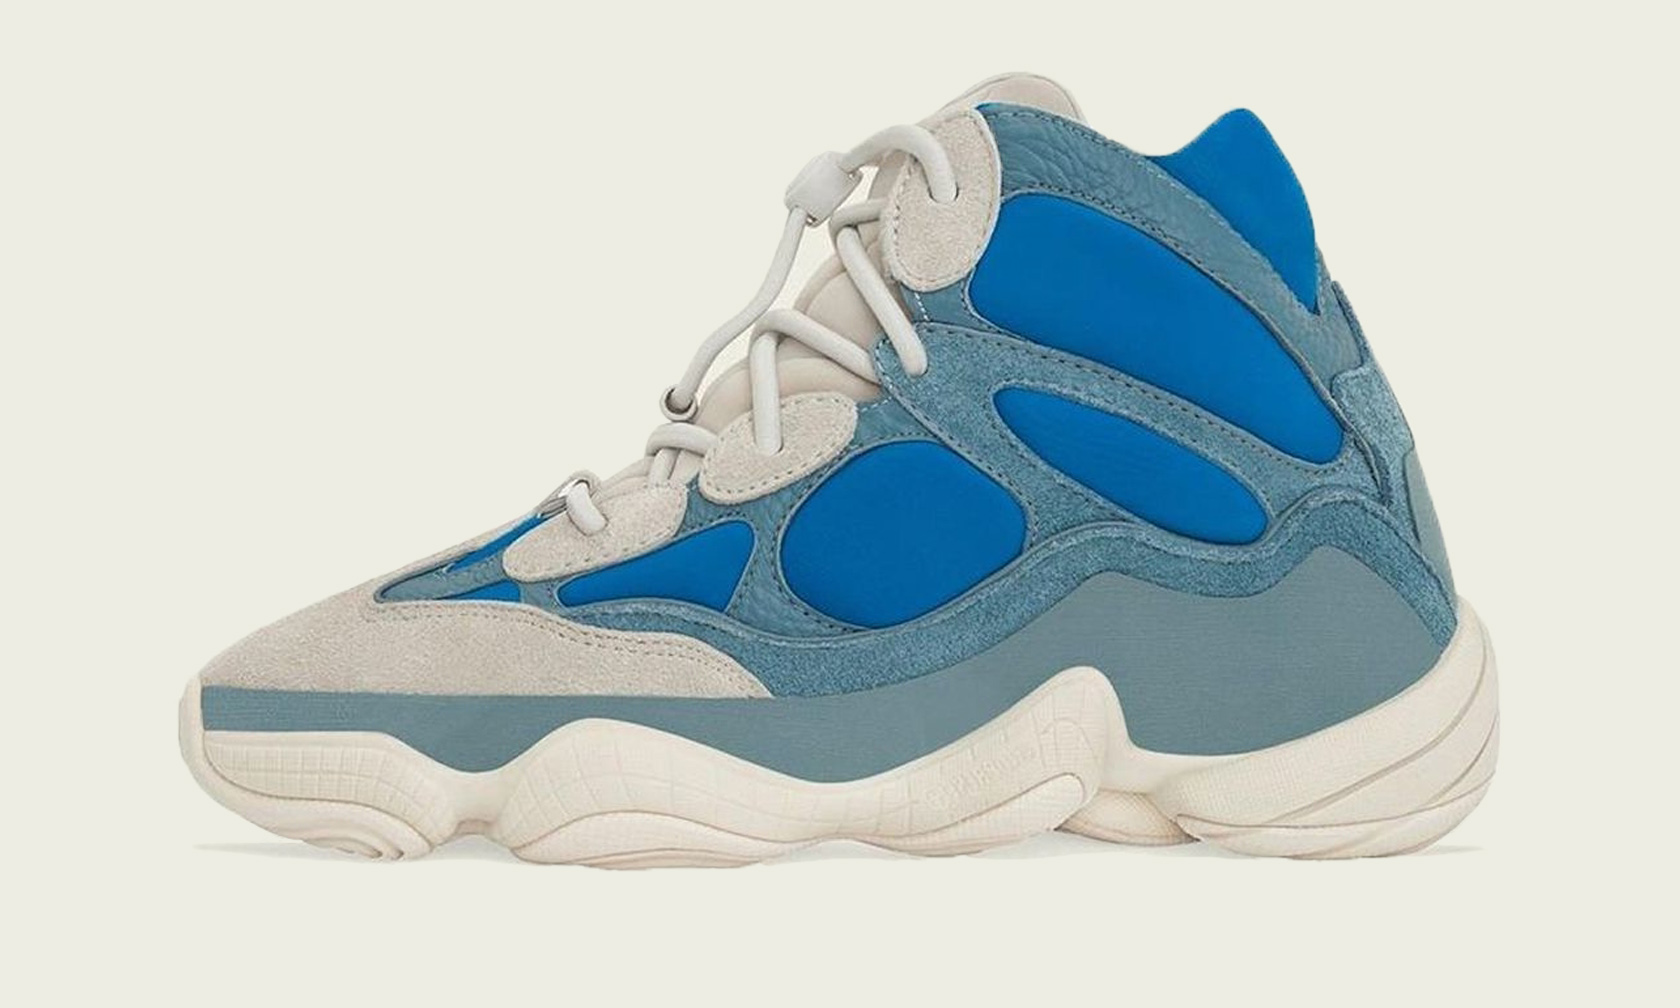 ADIDAS YEEZY 500 HIGH FROSTED BLUE купить